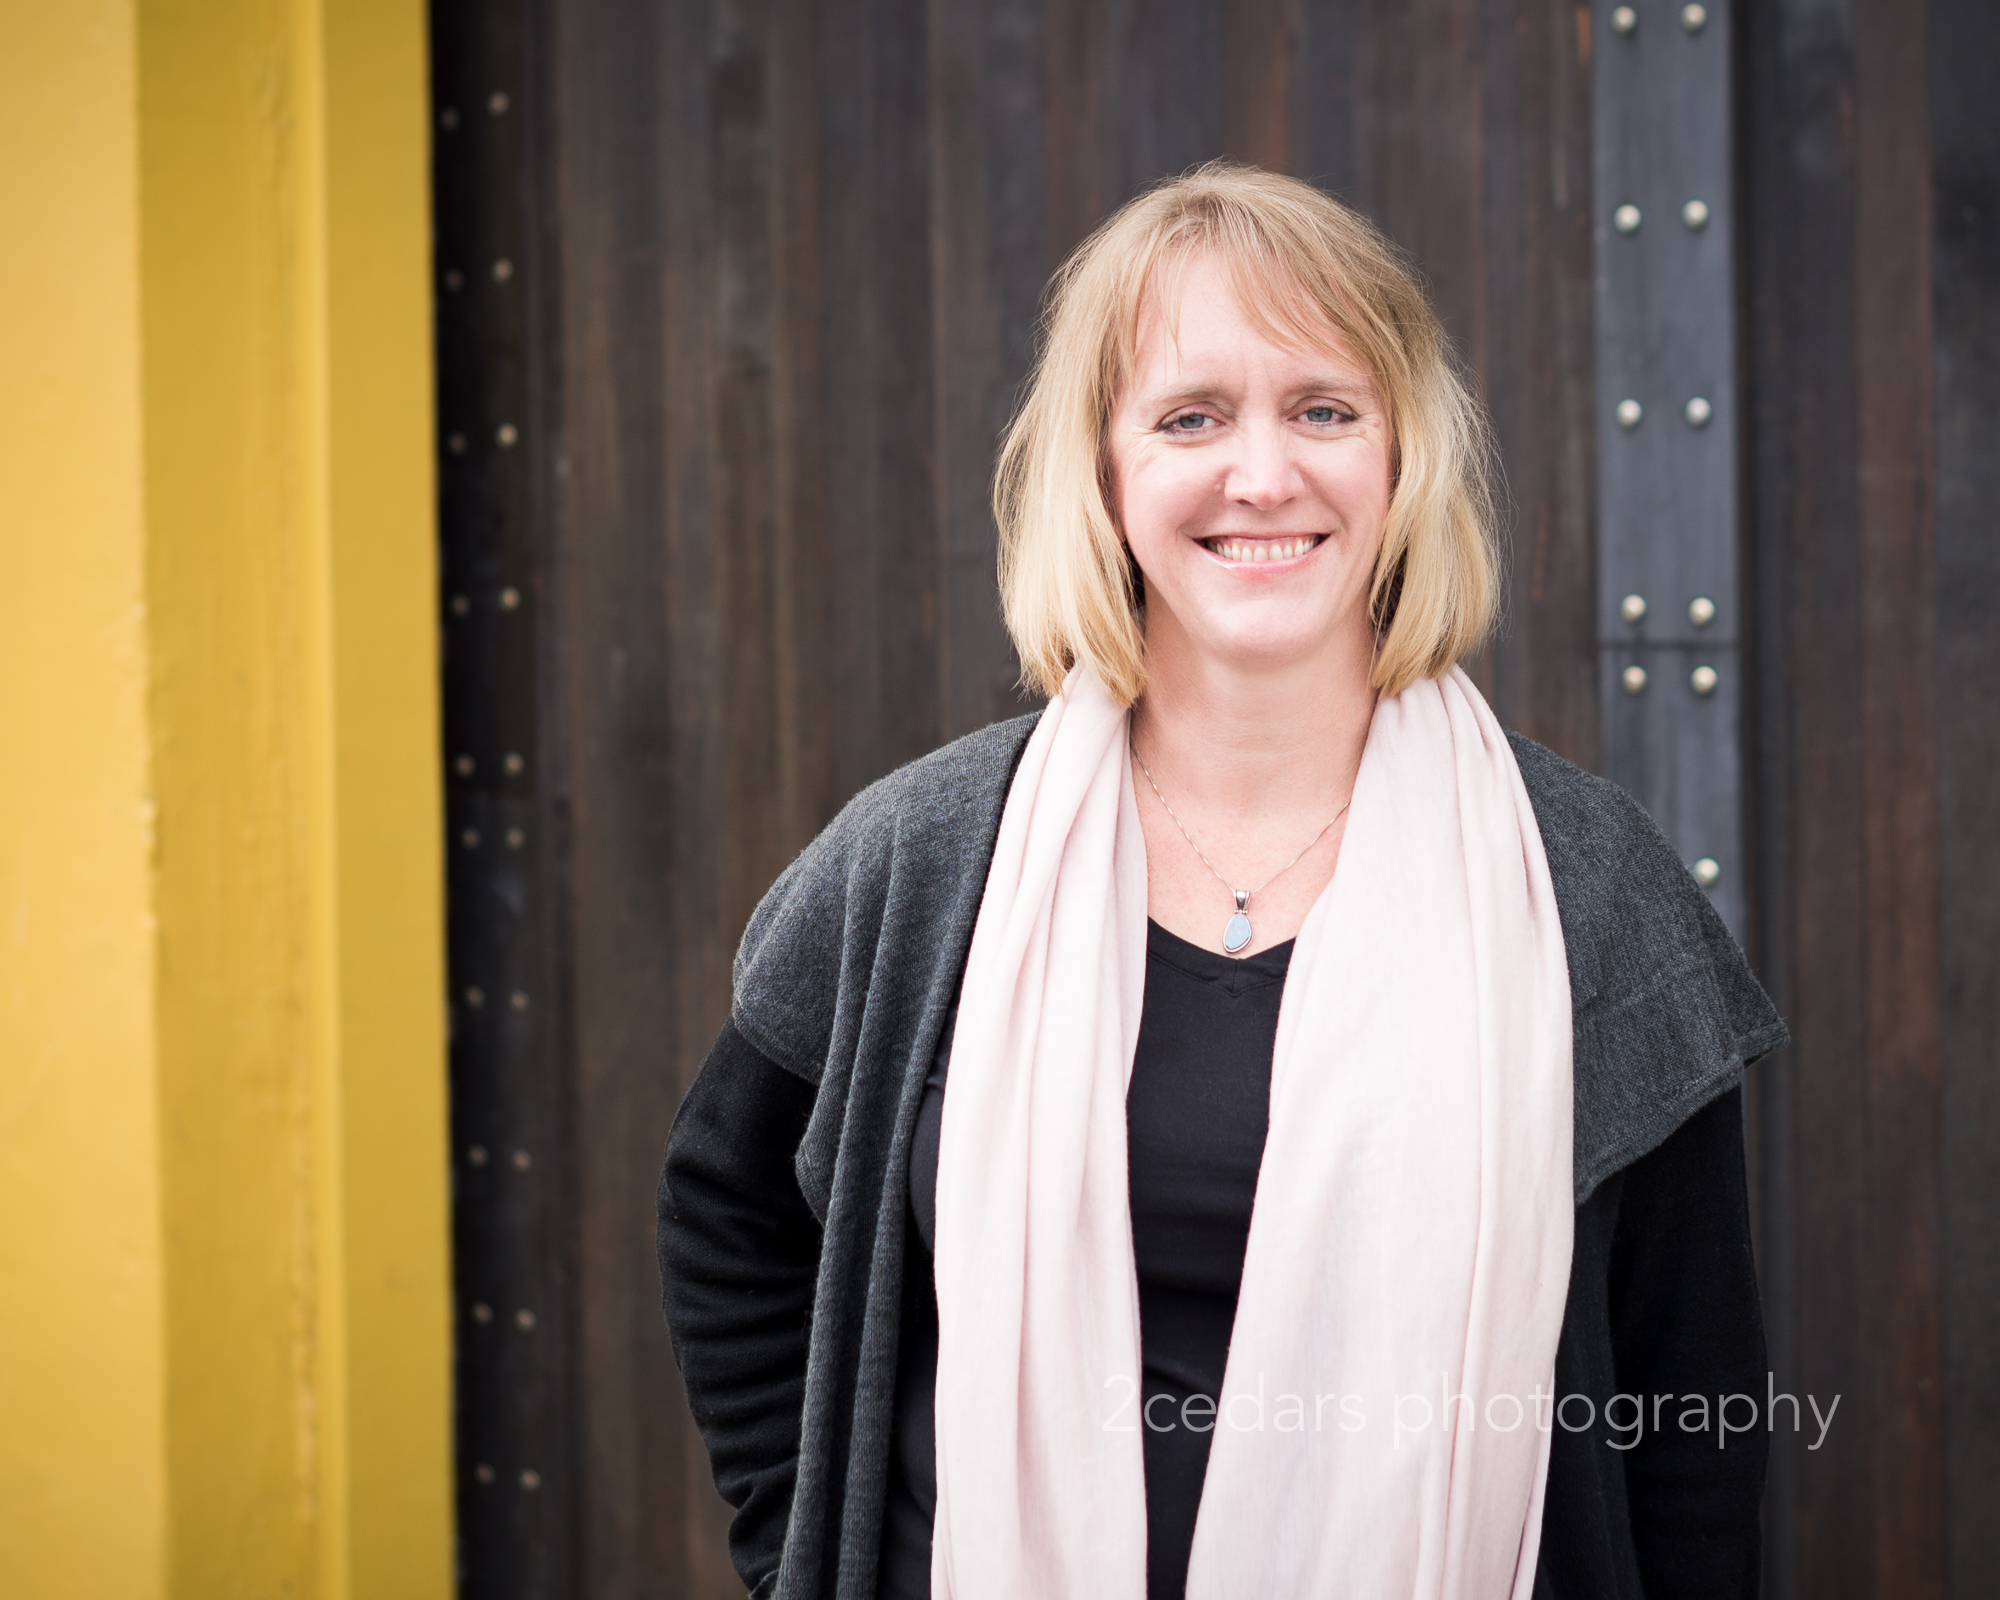 6 great locations for fantastic portraits - Women's headshot photography in downtown Tacoma, WA